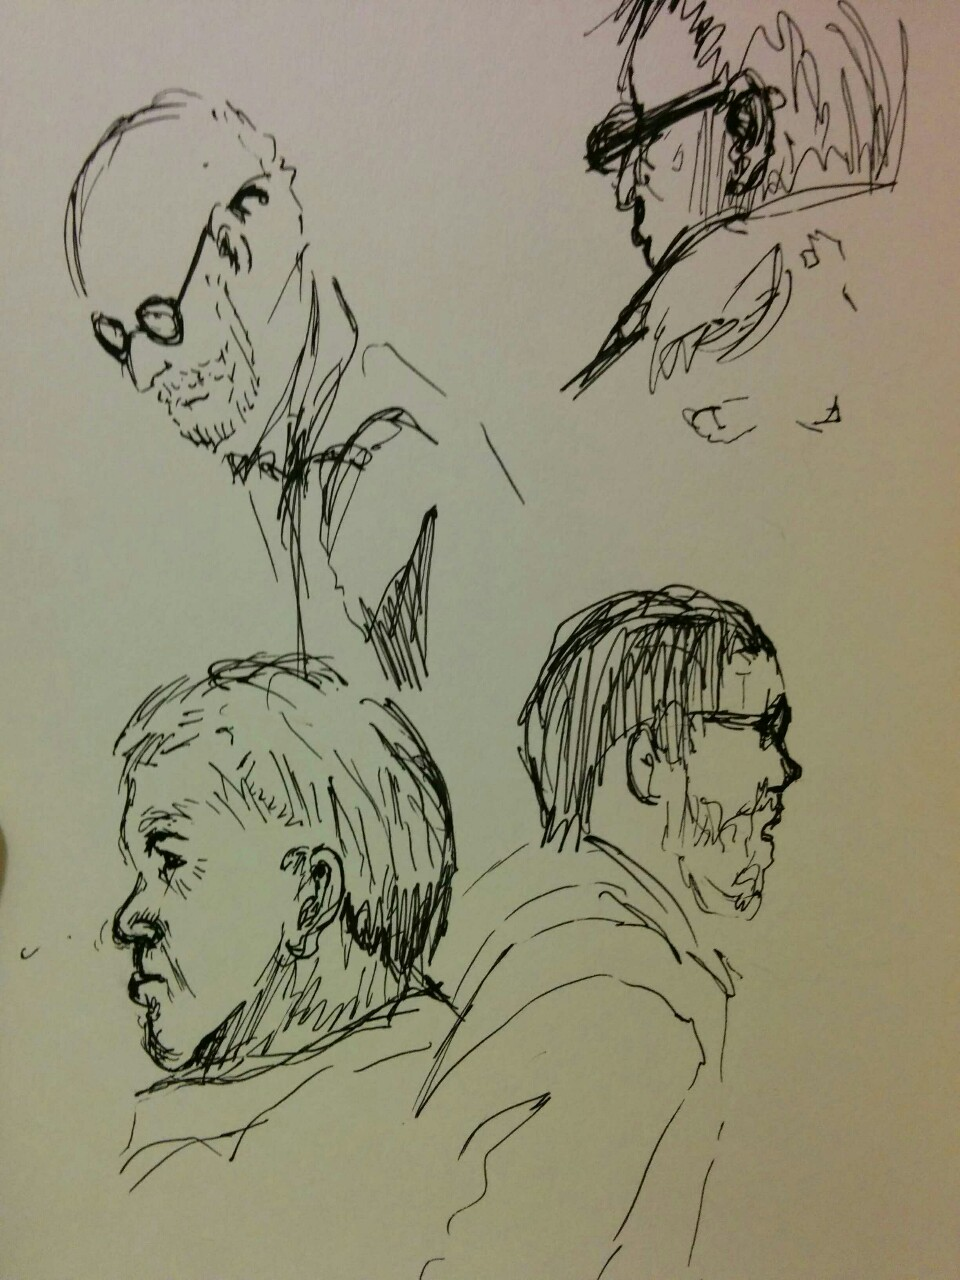 More jury duty sketches